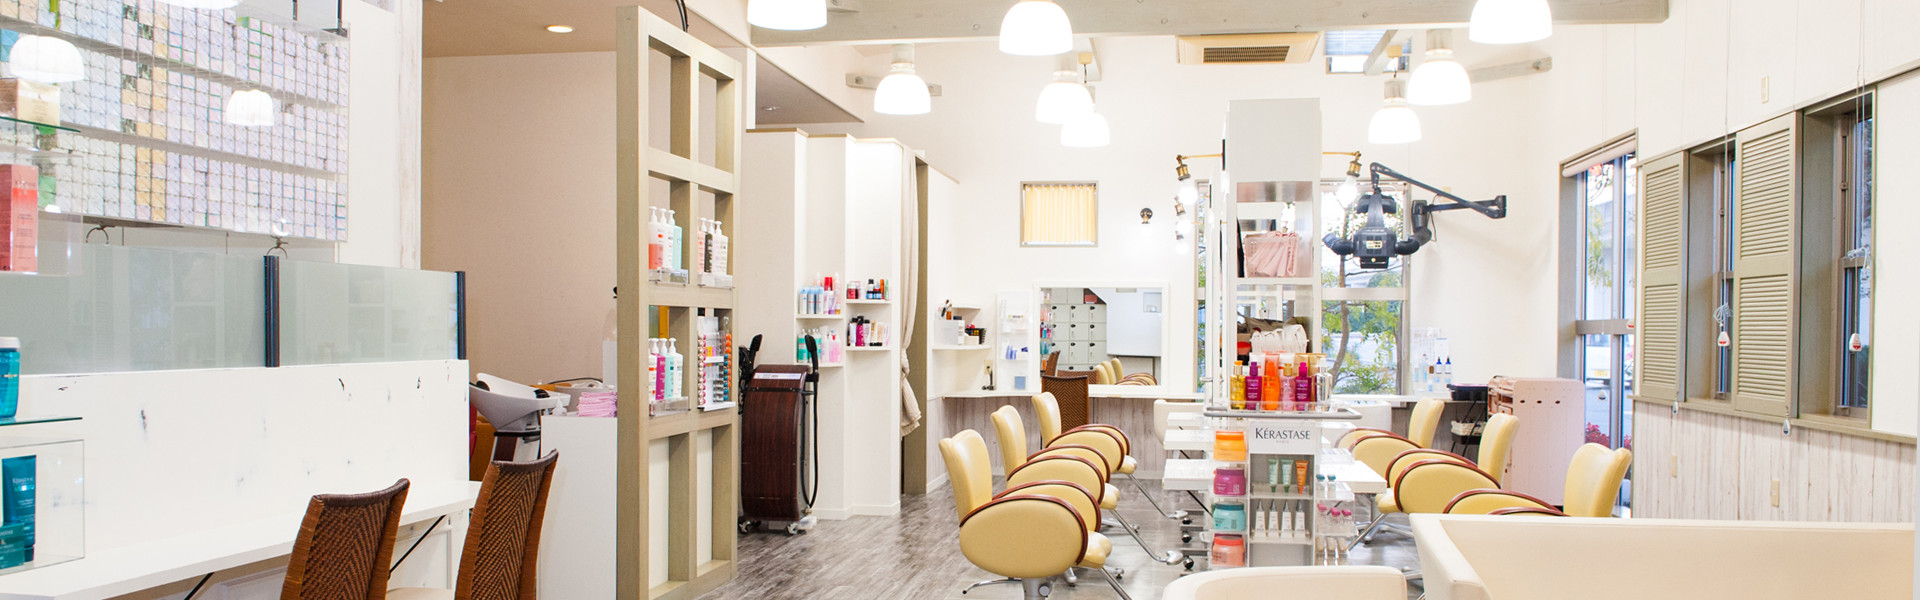 Total Beauty Salon Sugahara